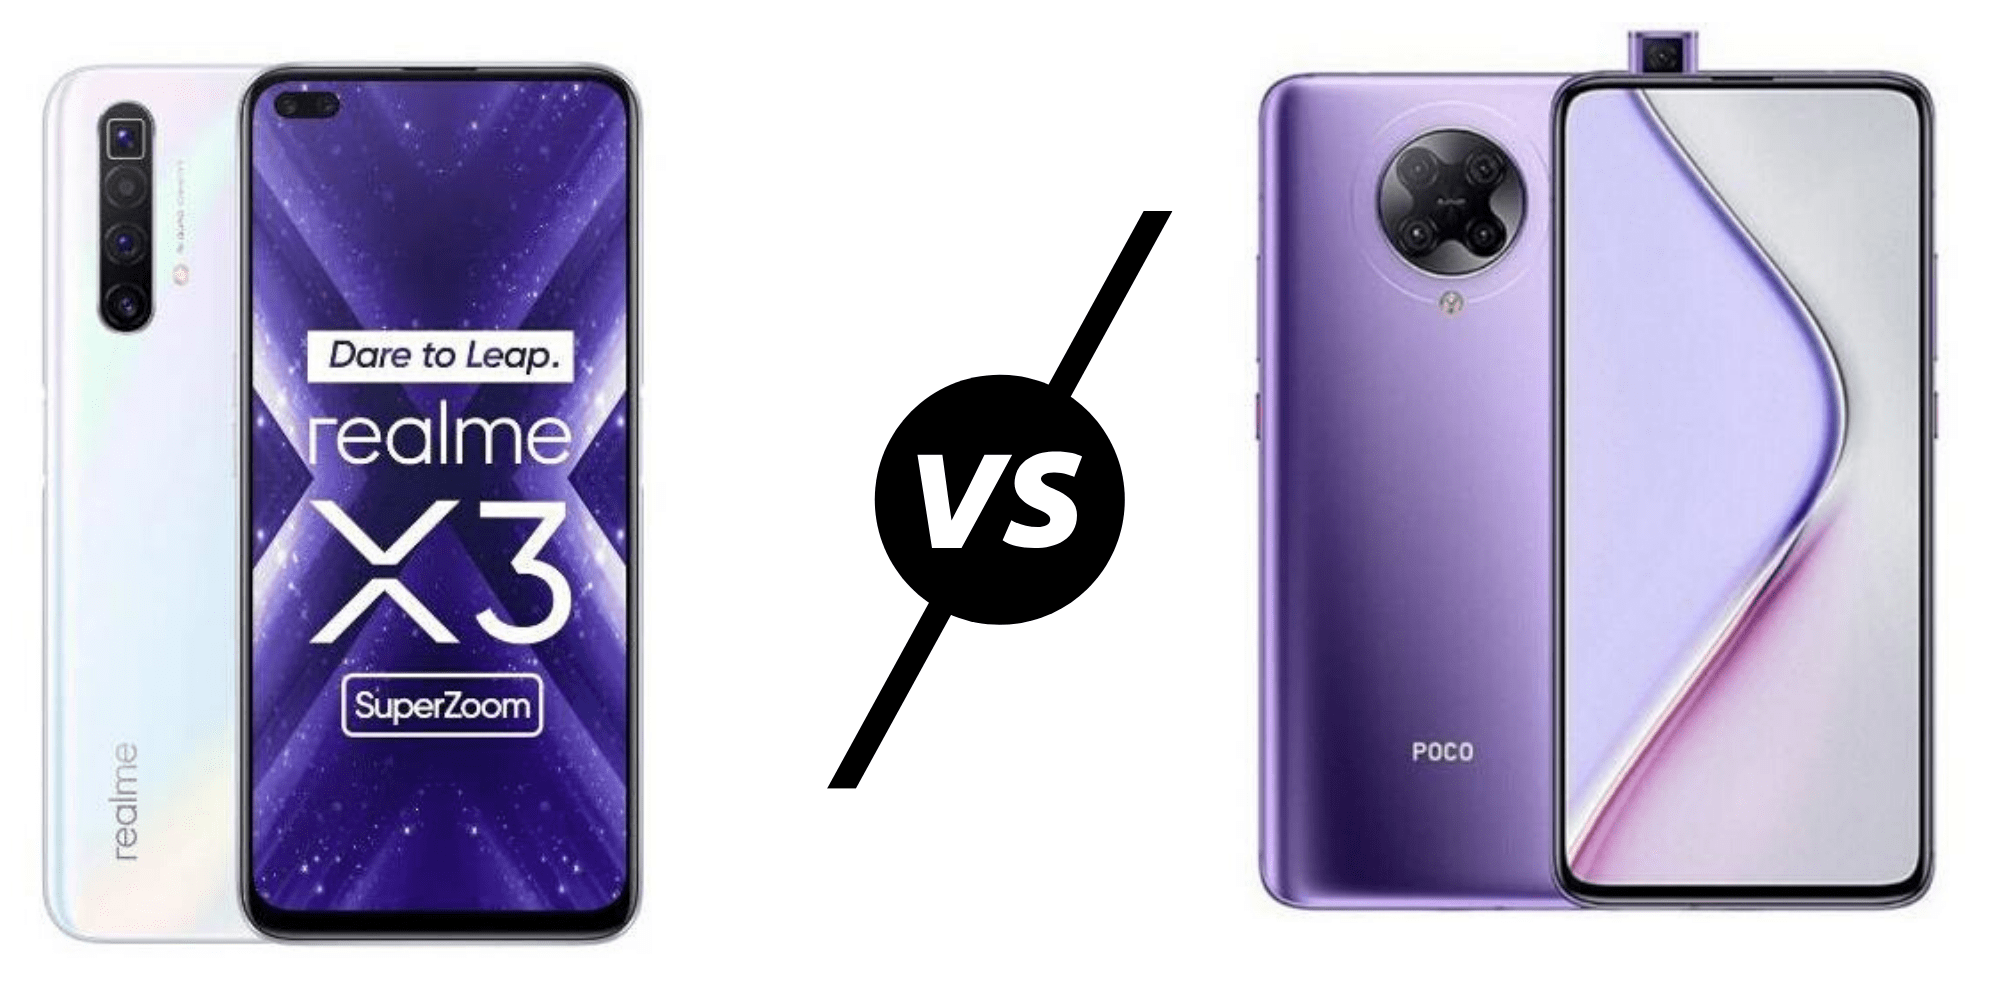 Realme X3 SuperZoom vs Poco F2 Pro / Redmi K30 Pro – Do you want a better  camera or better chipset & display?